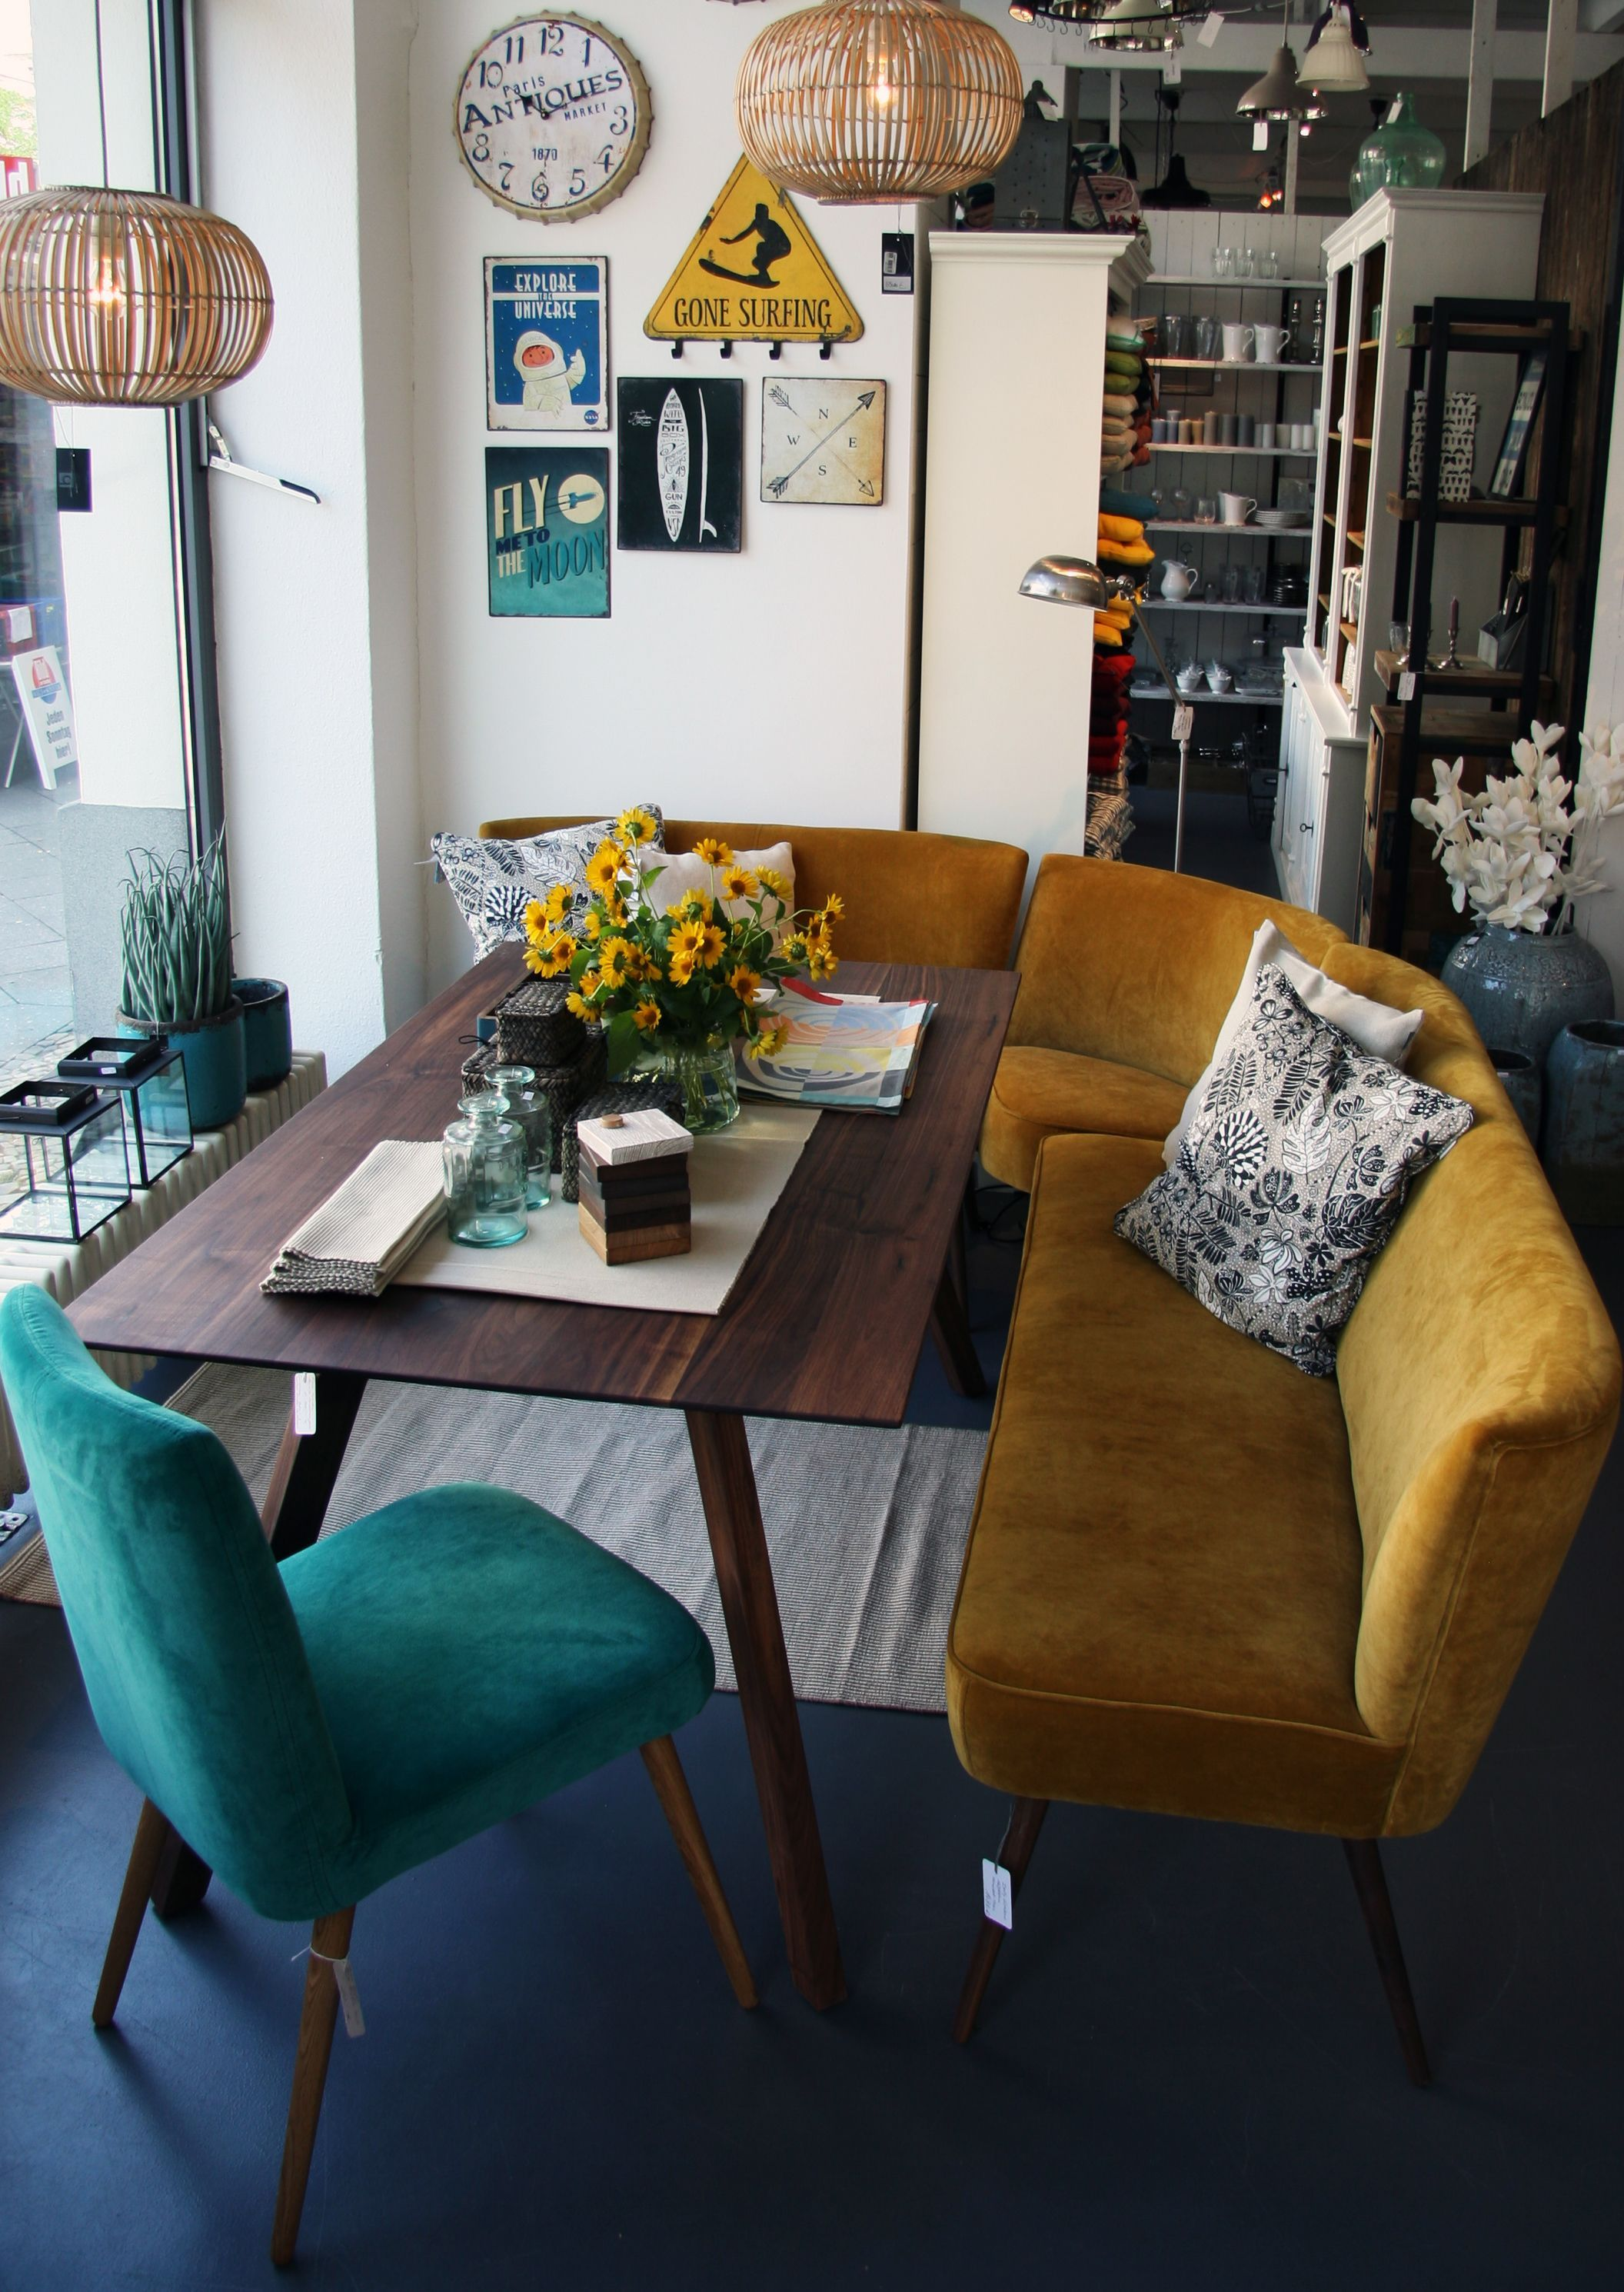 Pin by bluemen on mjce pinterest vintage furniture dining area